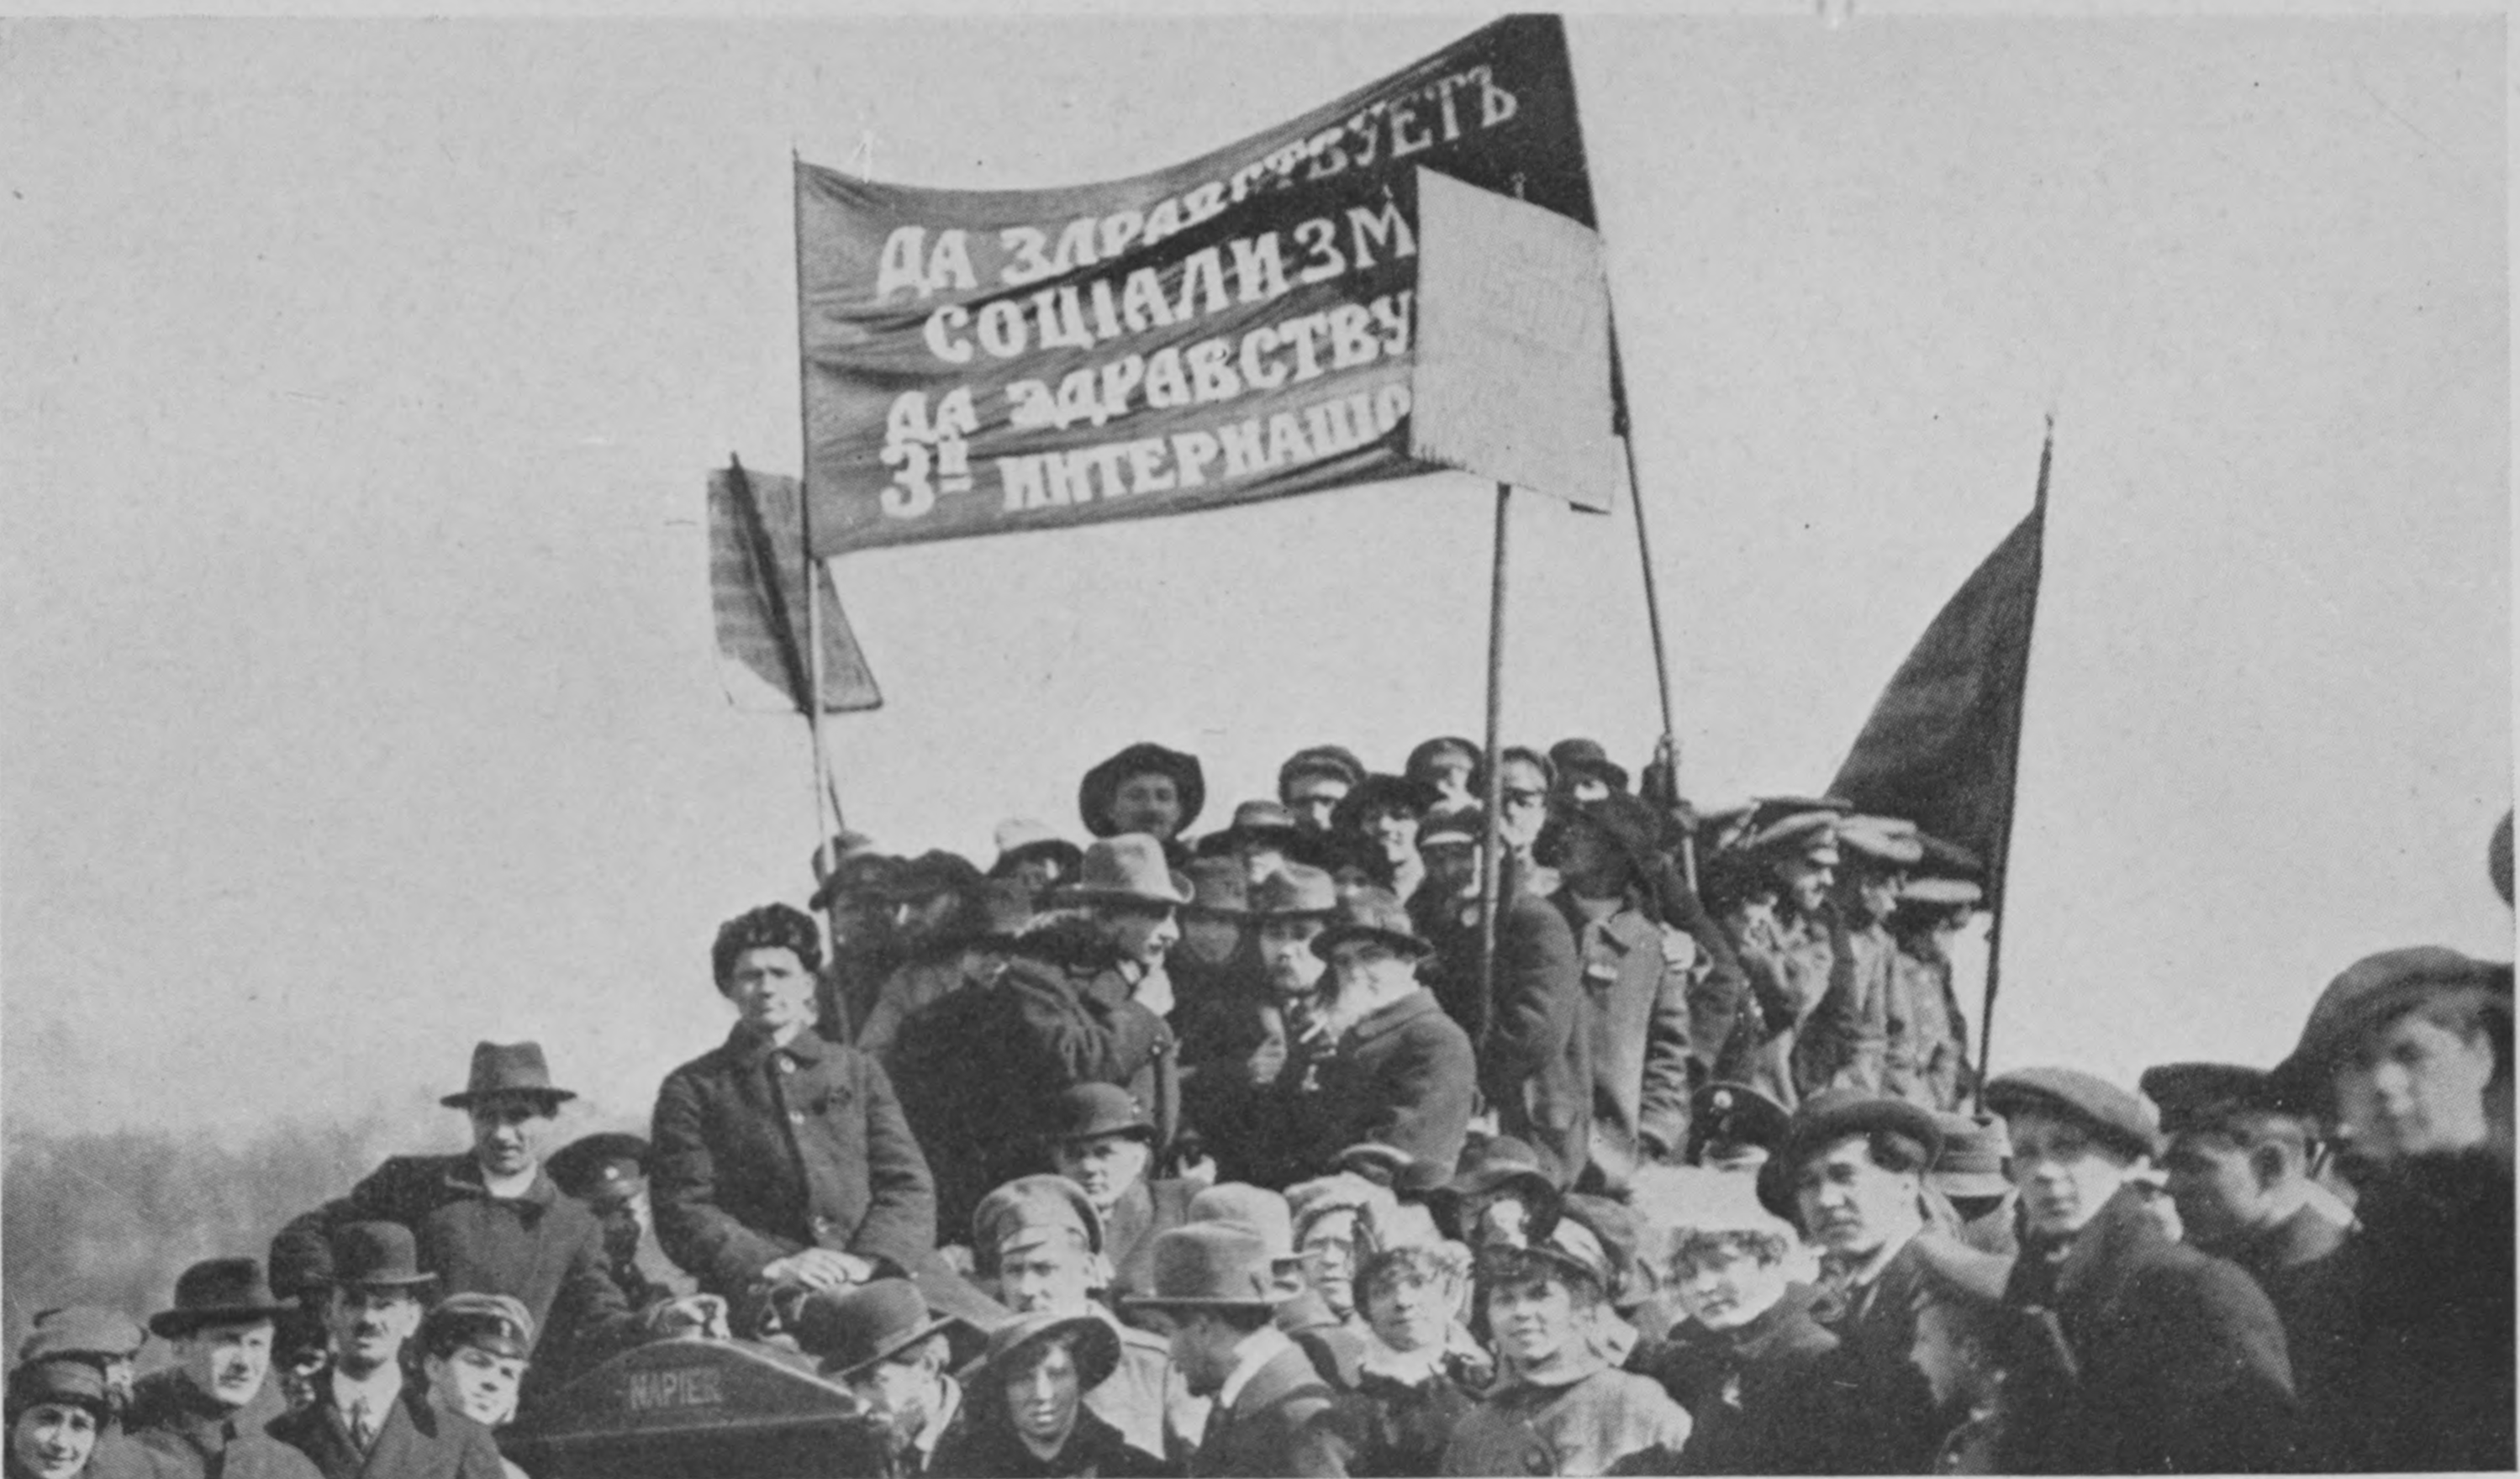 http://upload.wikimedia.org/wikipedia/commons/0/08/Manifestaci%C3%B3n-bolchevique-julio-1917--russianbolshevik00rossuoft.png